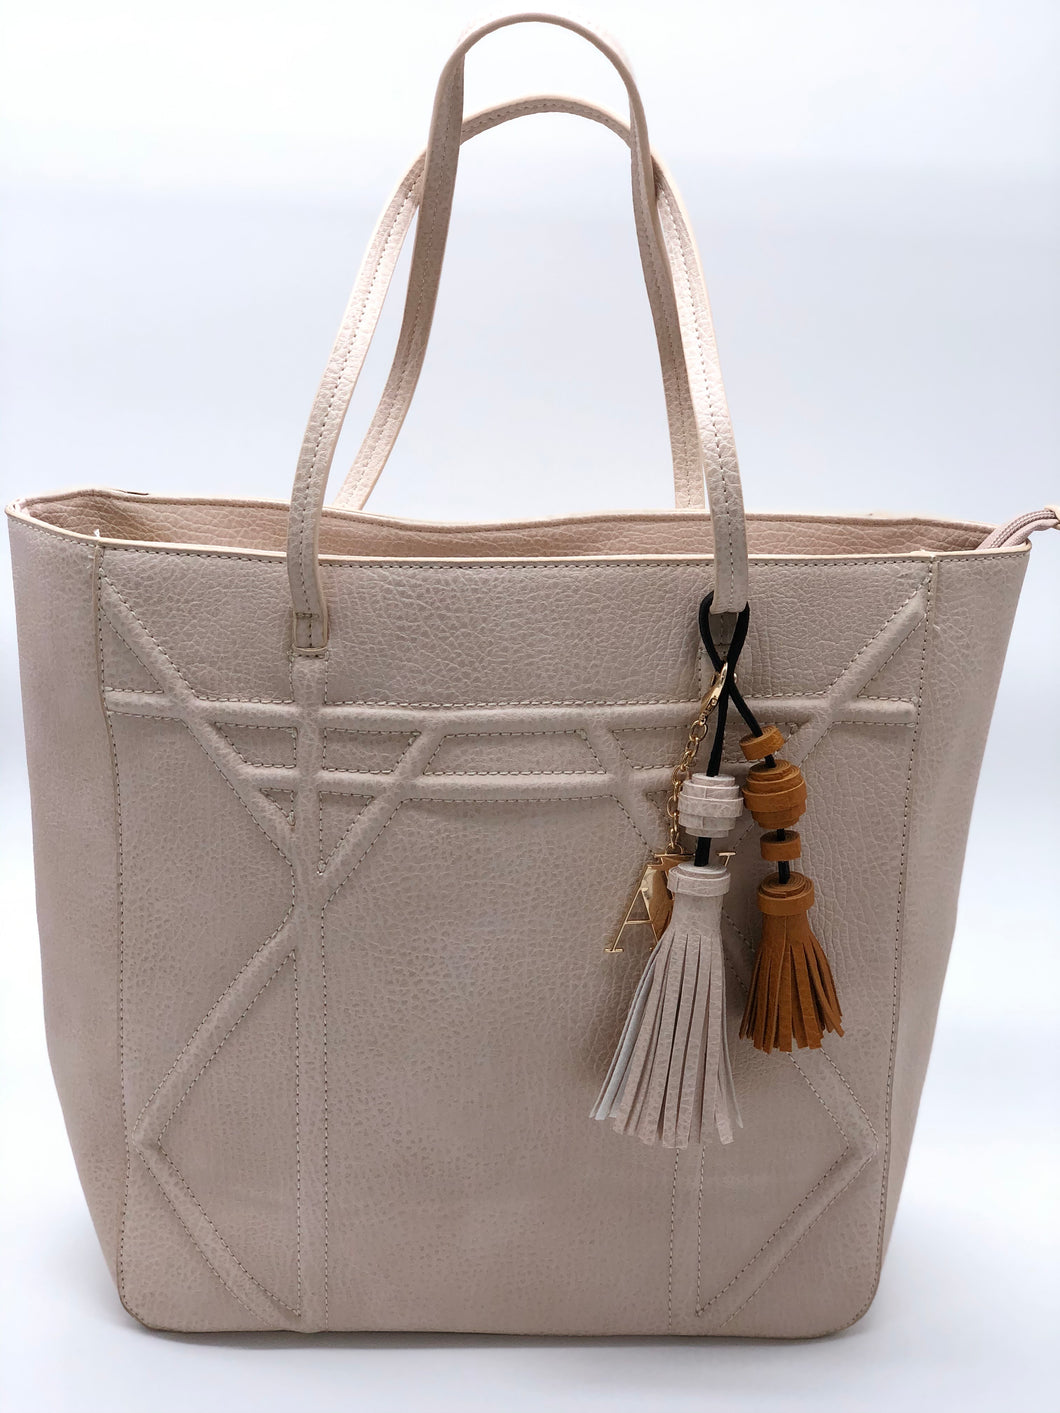 Vegan Cream Shopper Handbag